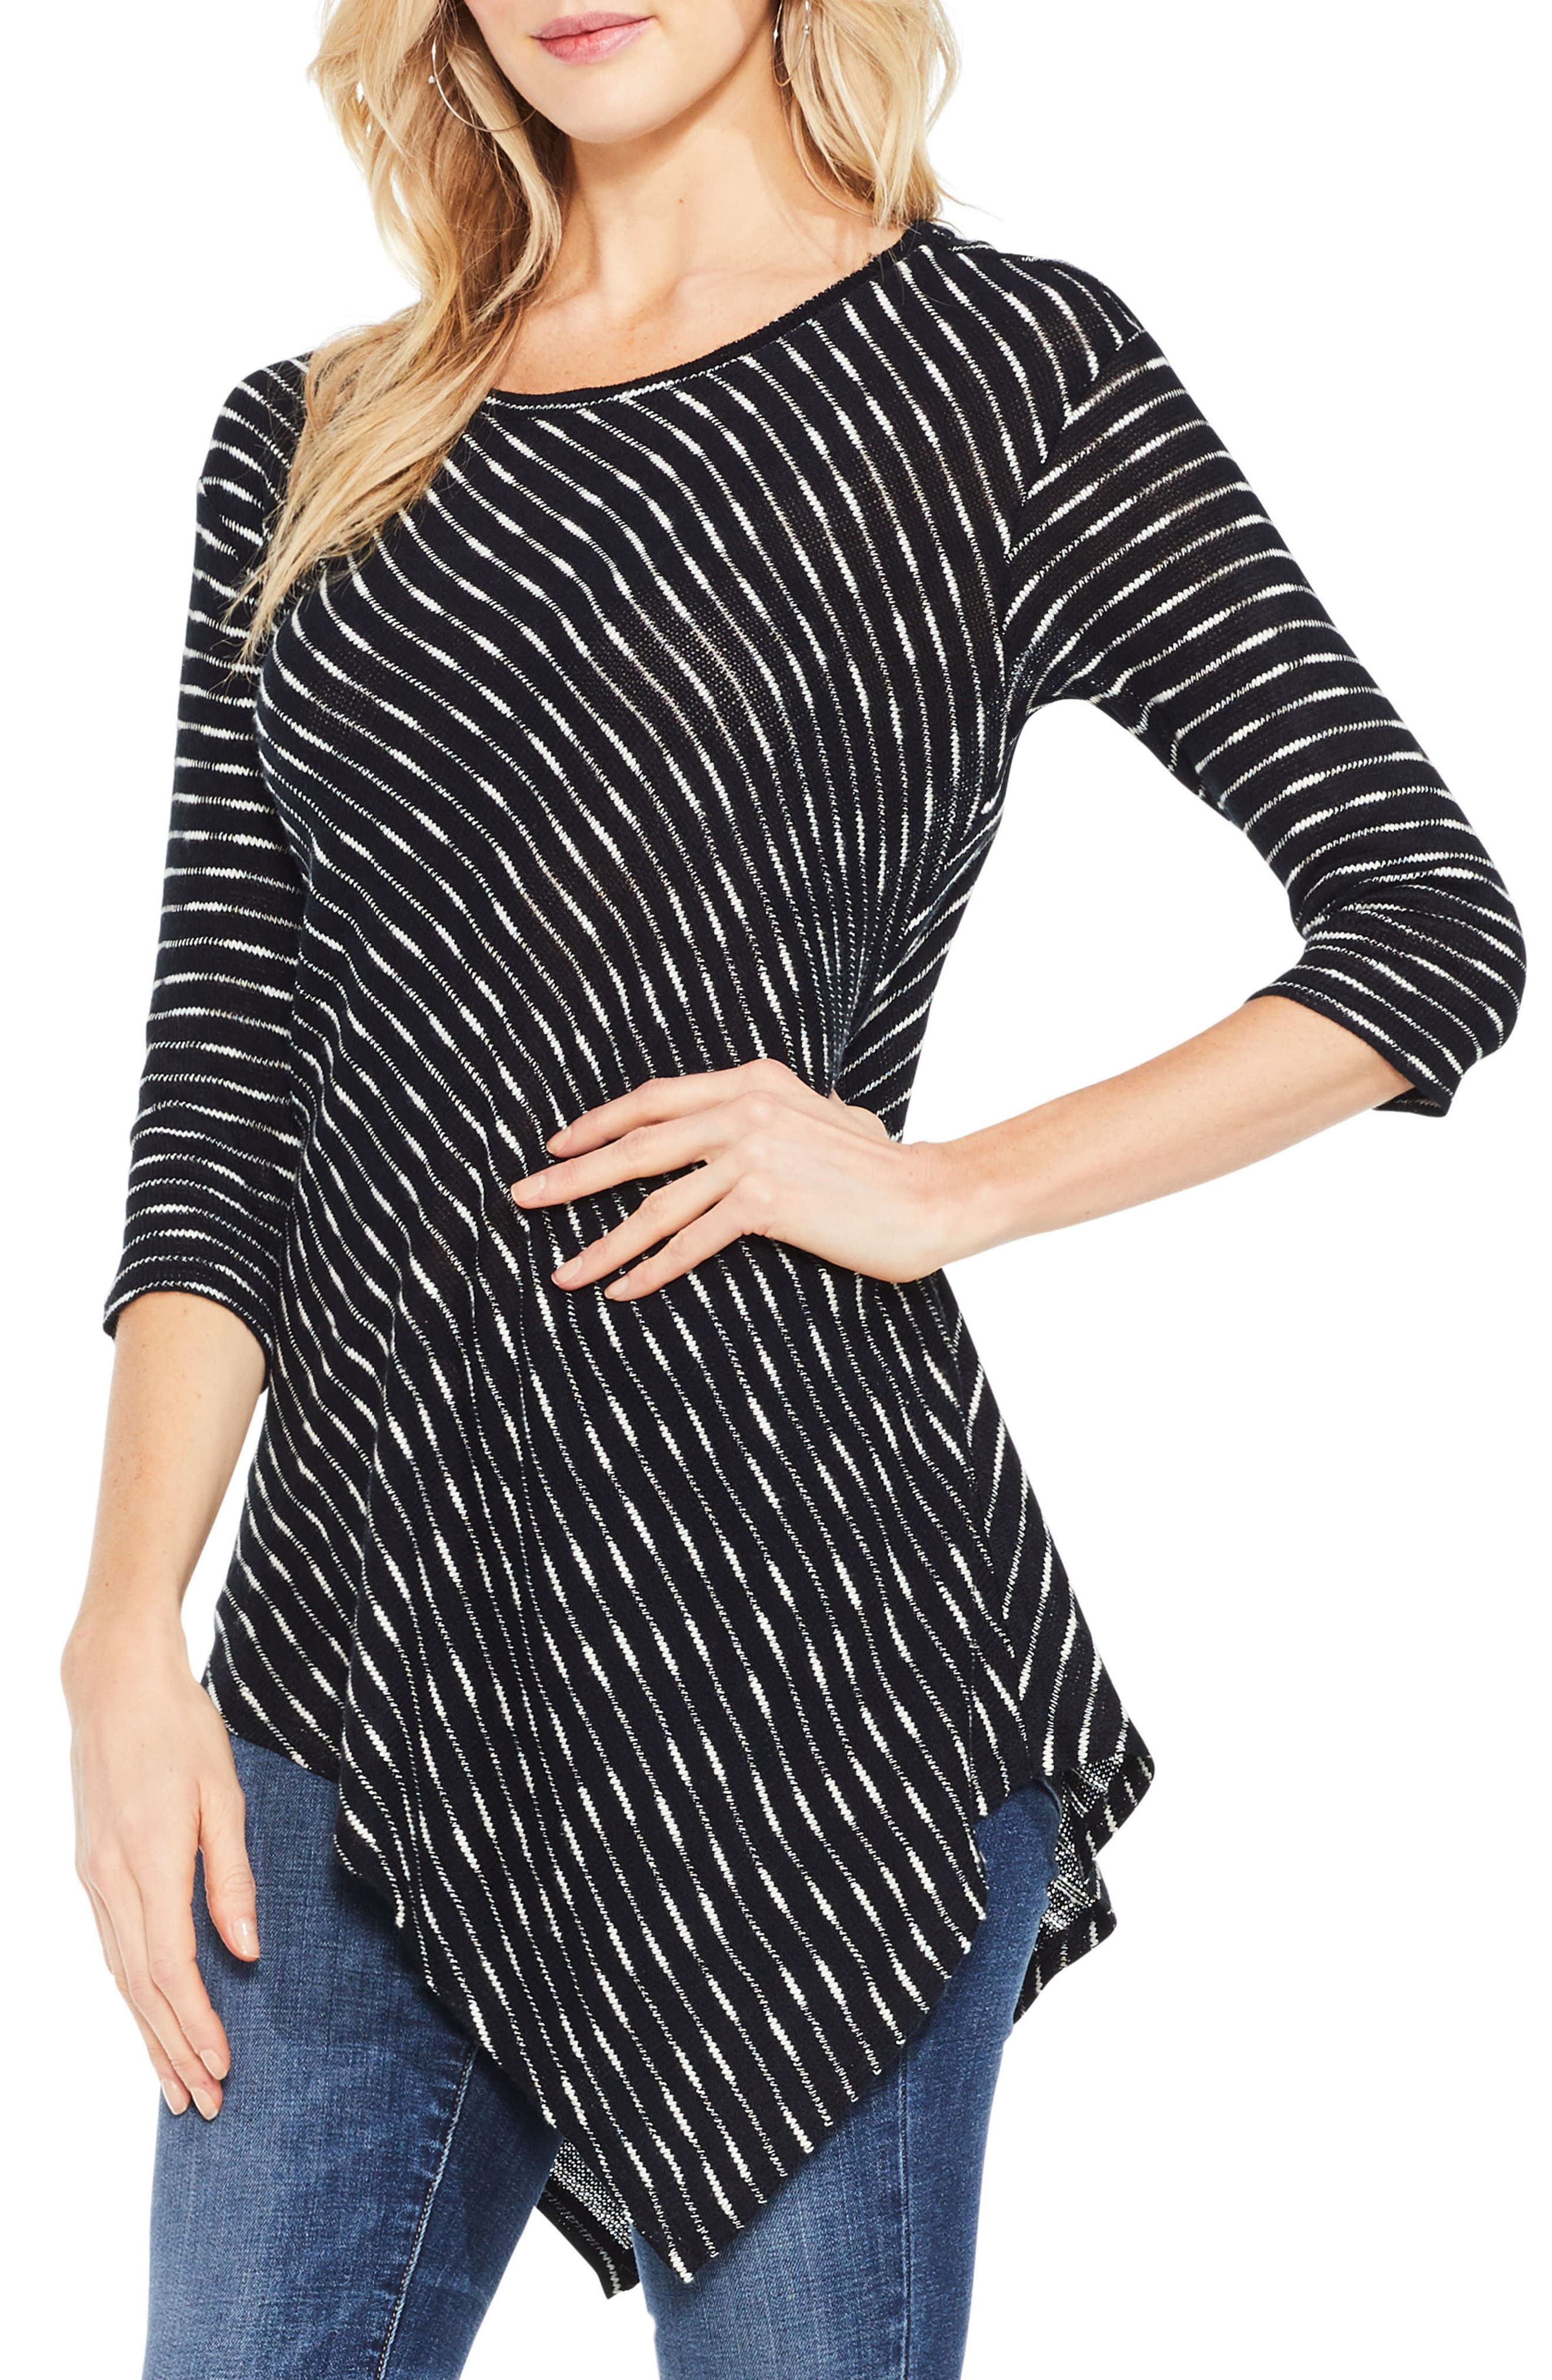 Main Image - Two by Vince Camuto Asymmetrical Stripe Top